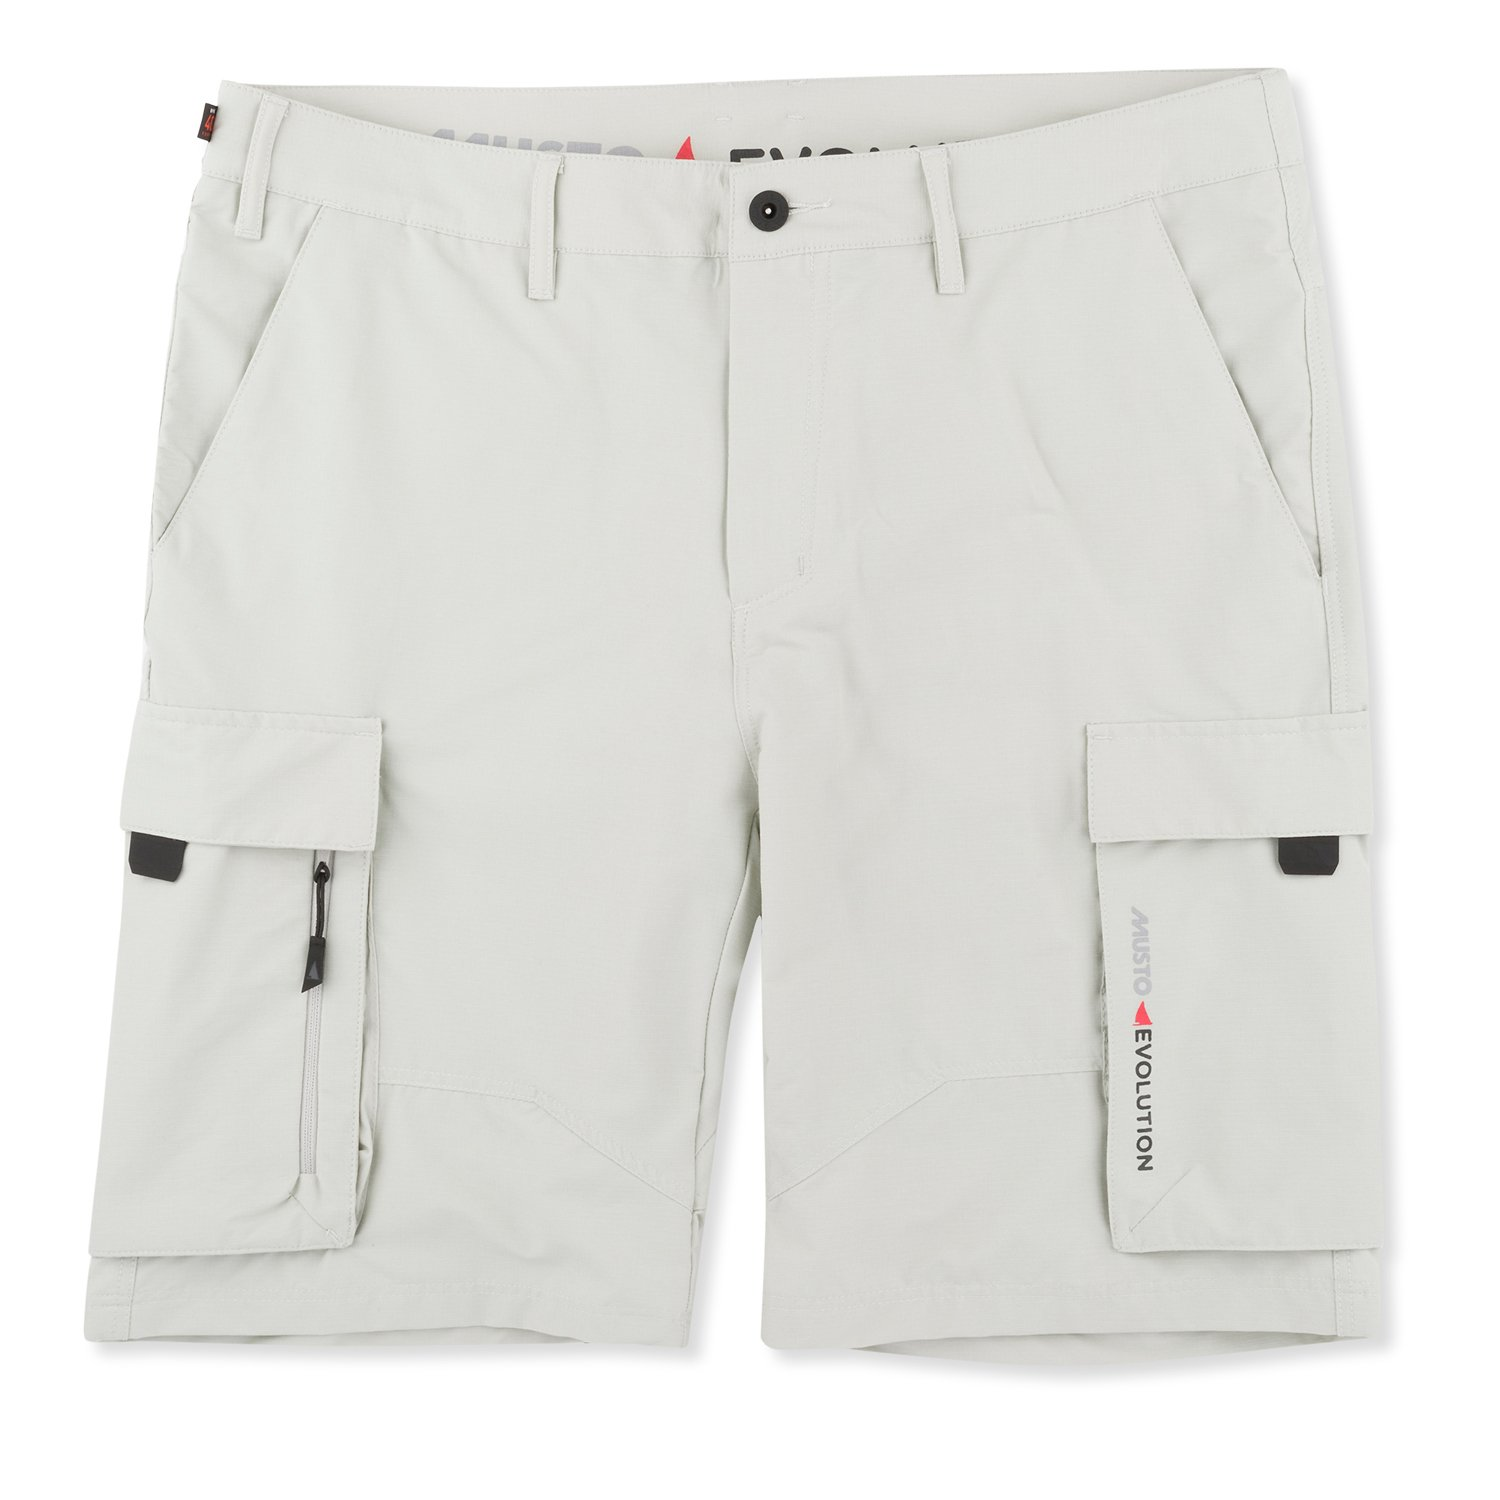 2013Musto Evolution Deck Shorts with UV Protection Fast Dry Sailing Trousers